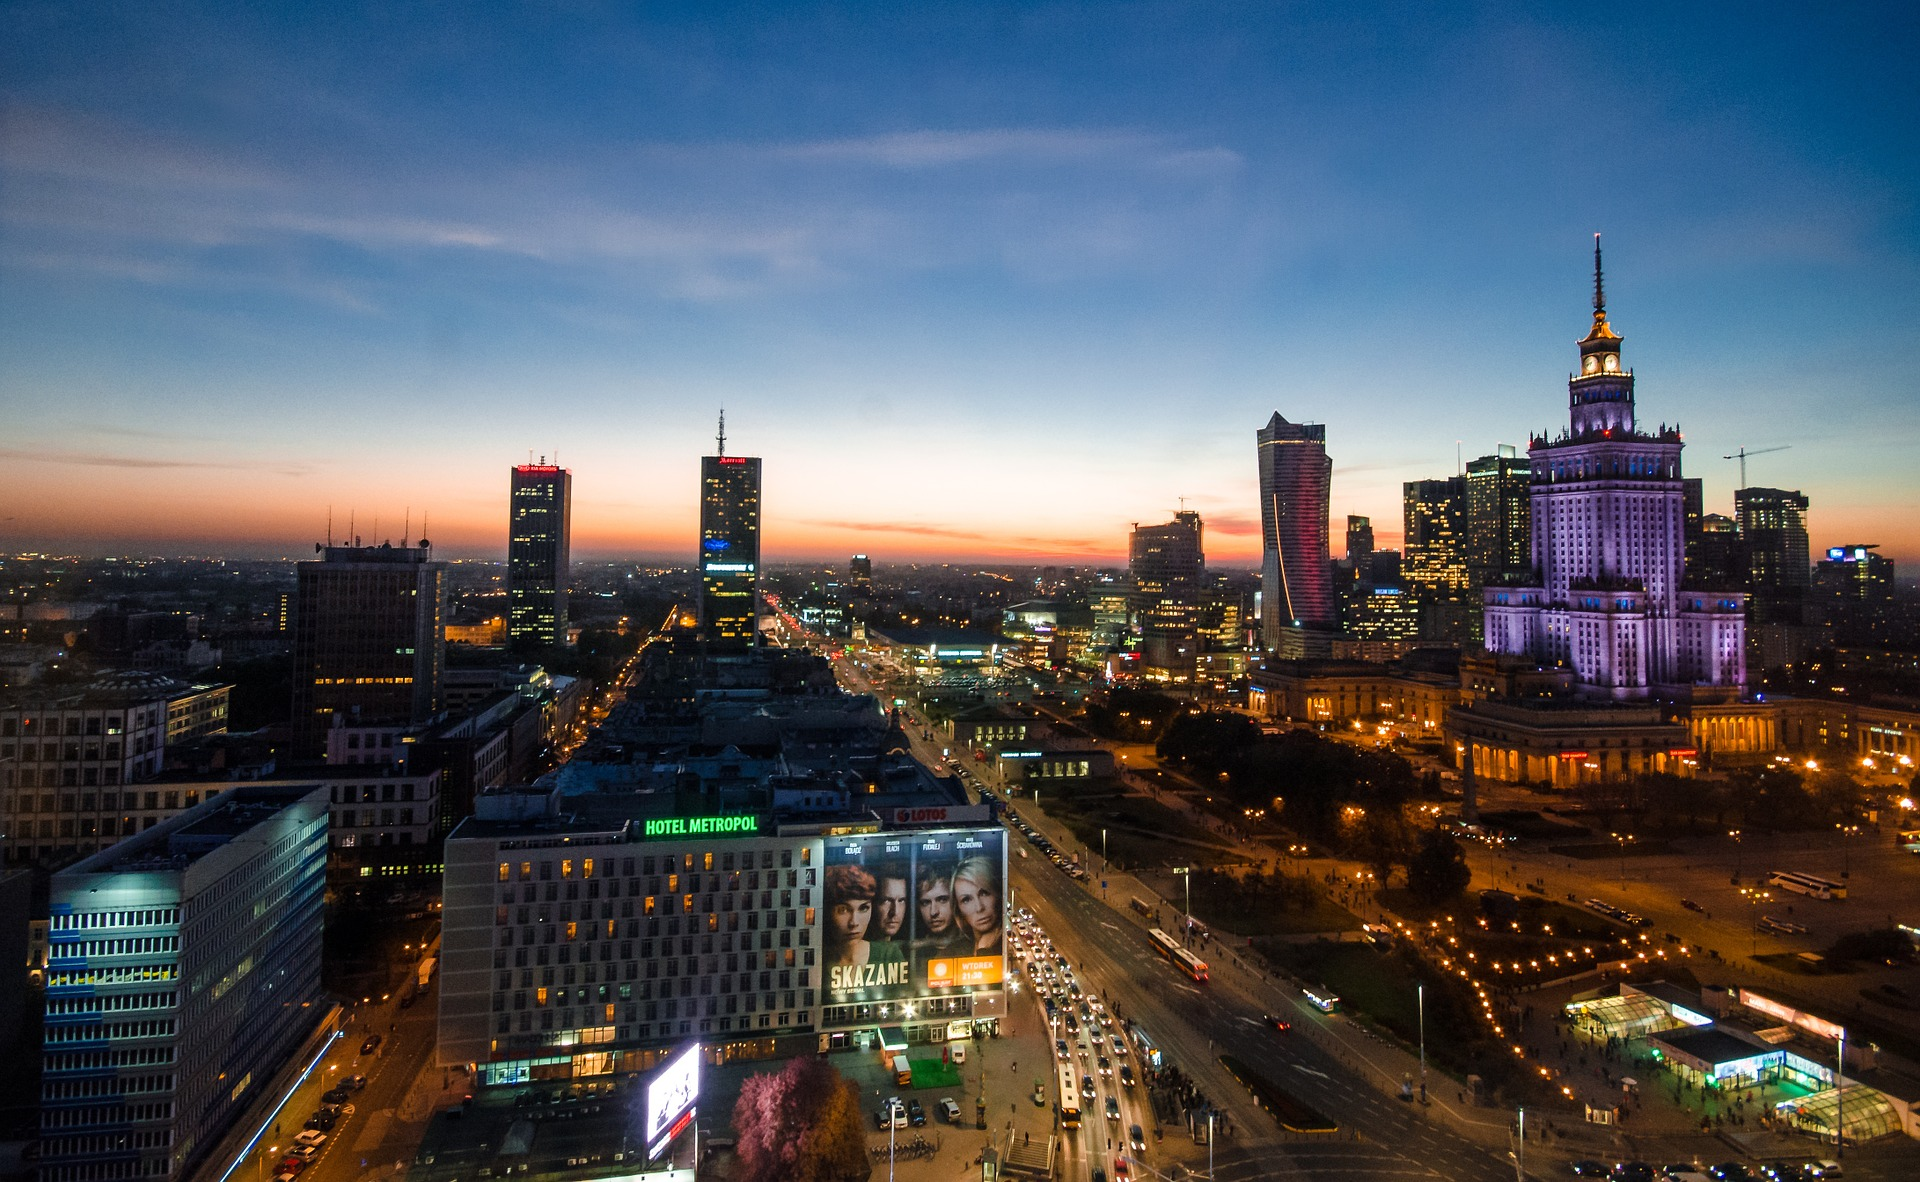 Hotels in Warsaw, Poland